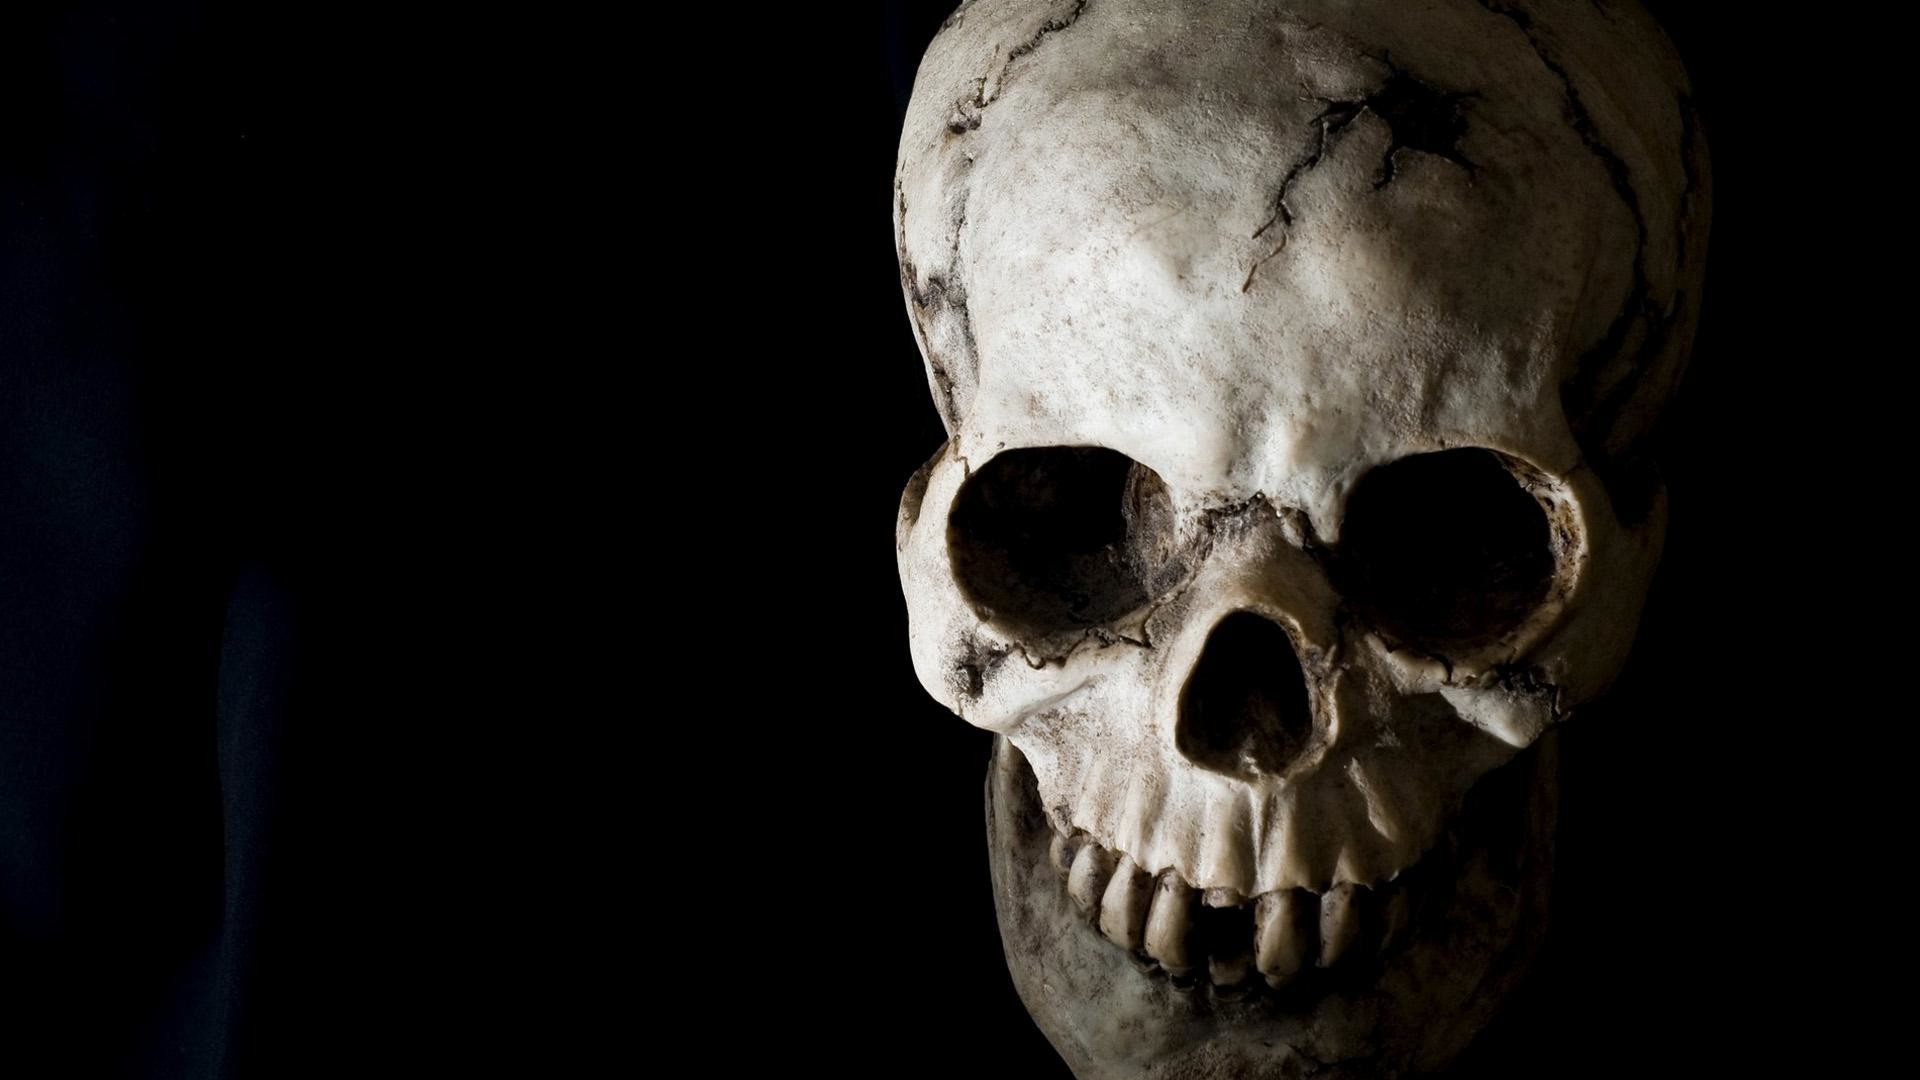 Cool Skeleton Wallpapers (45+ images)